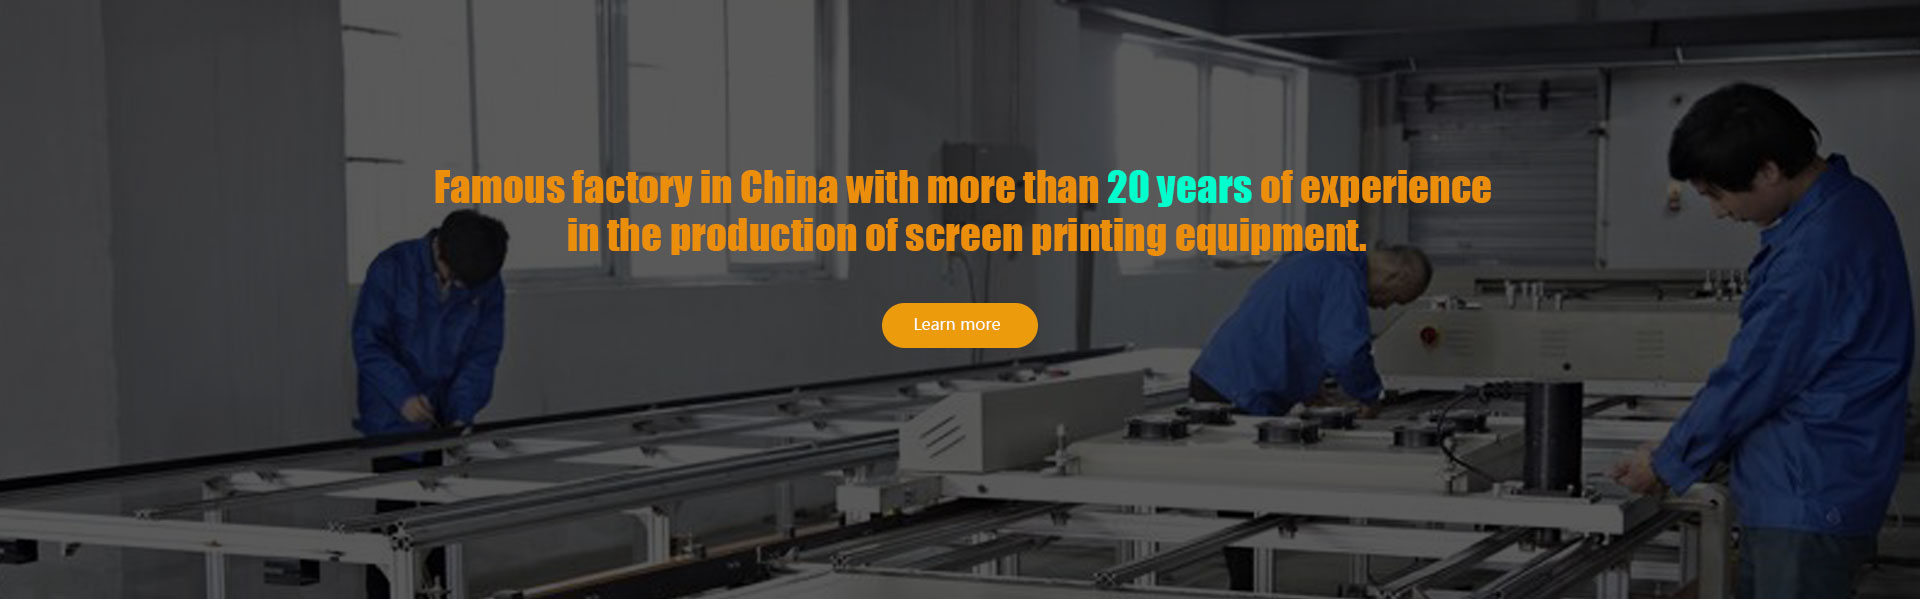 Provide customers with technical support,equipment